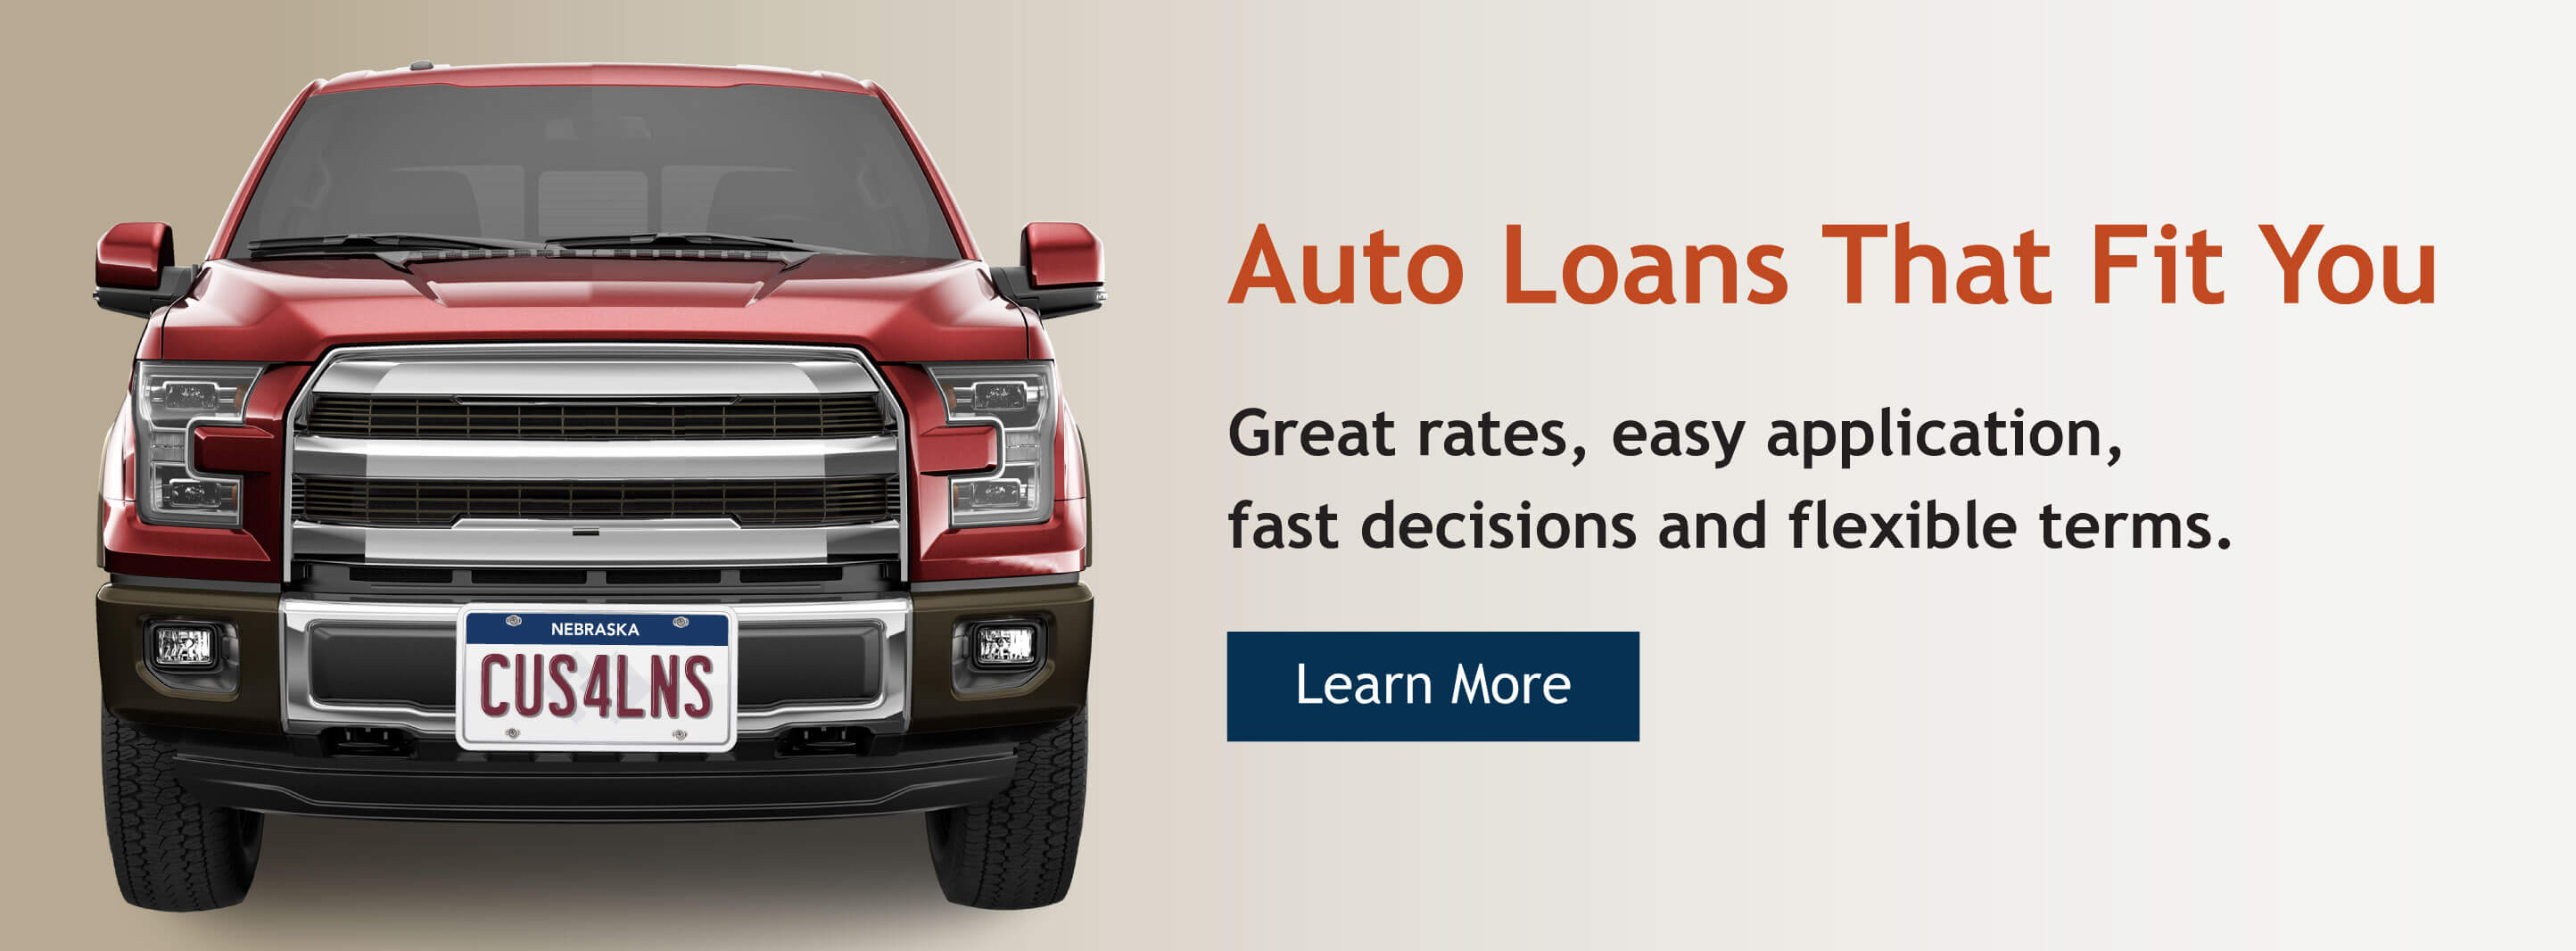 Auto loans that fit you.  Great rates, easy application, fast decision and flexible terms.